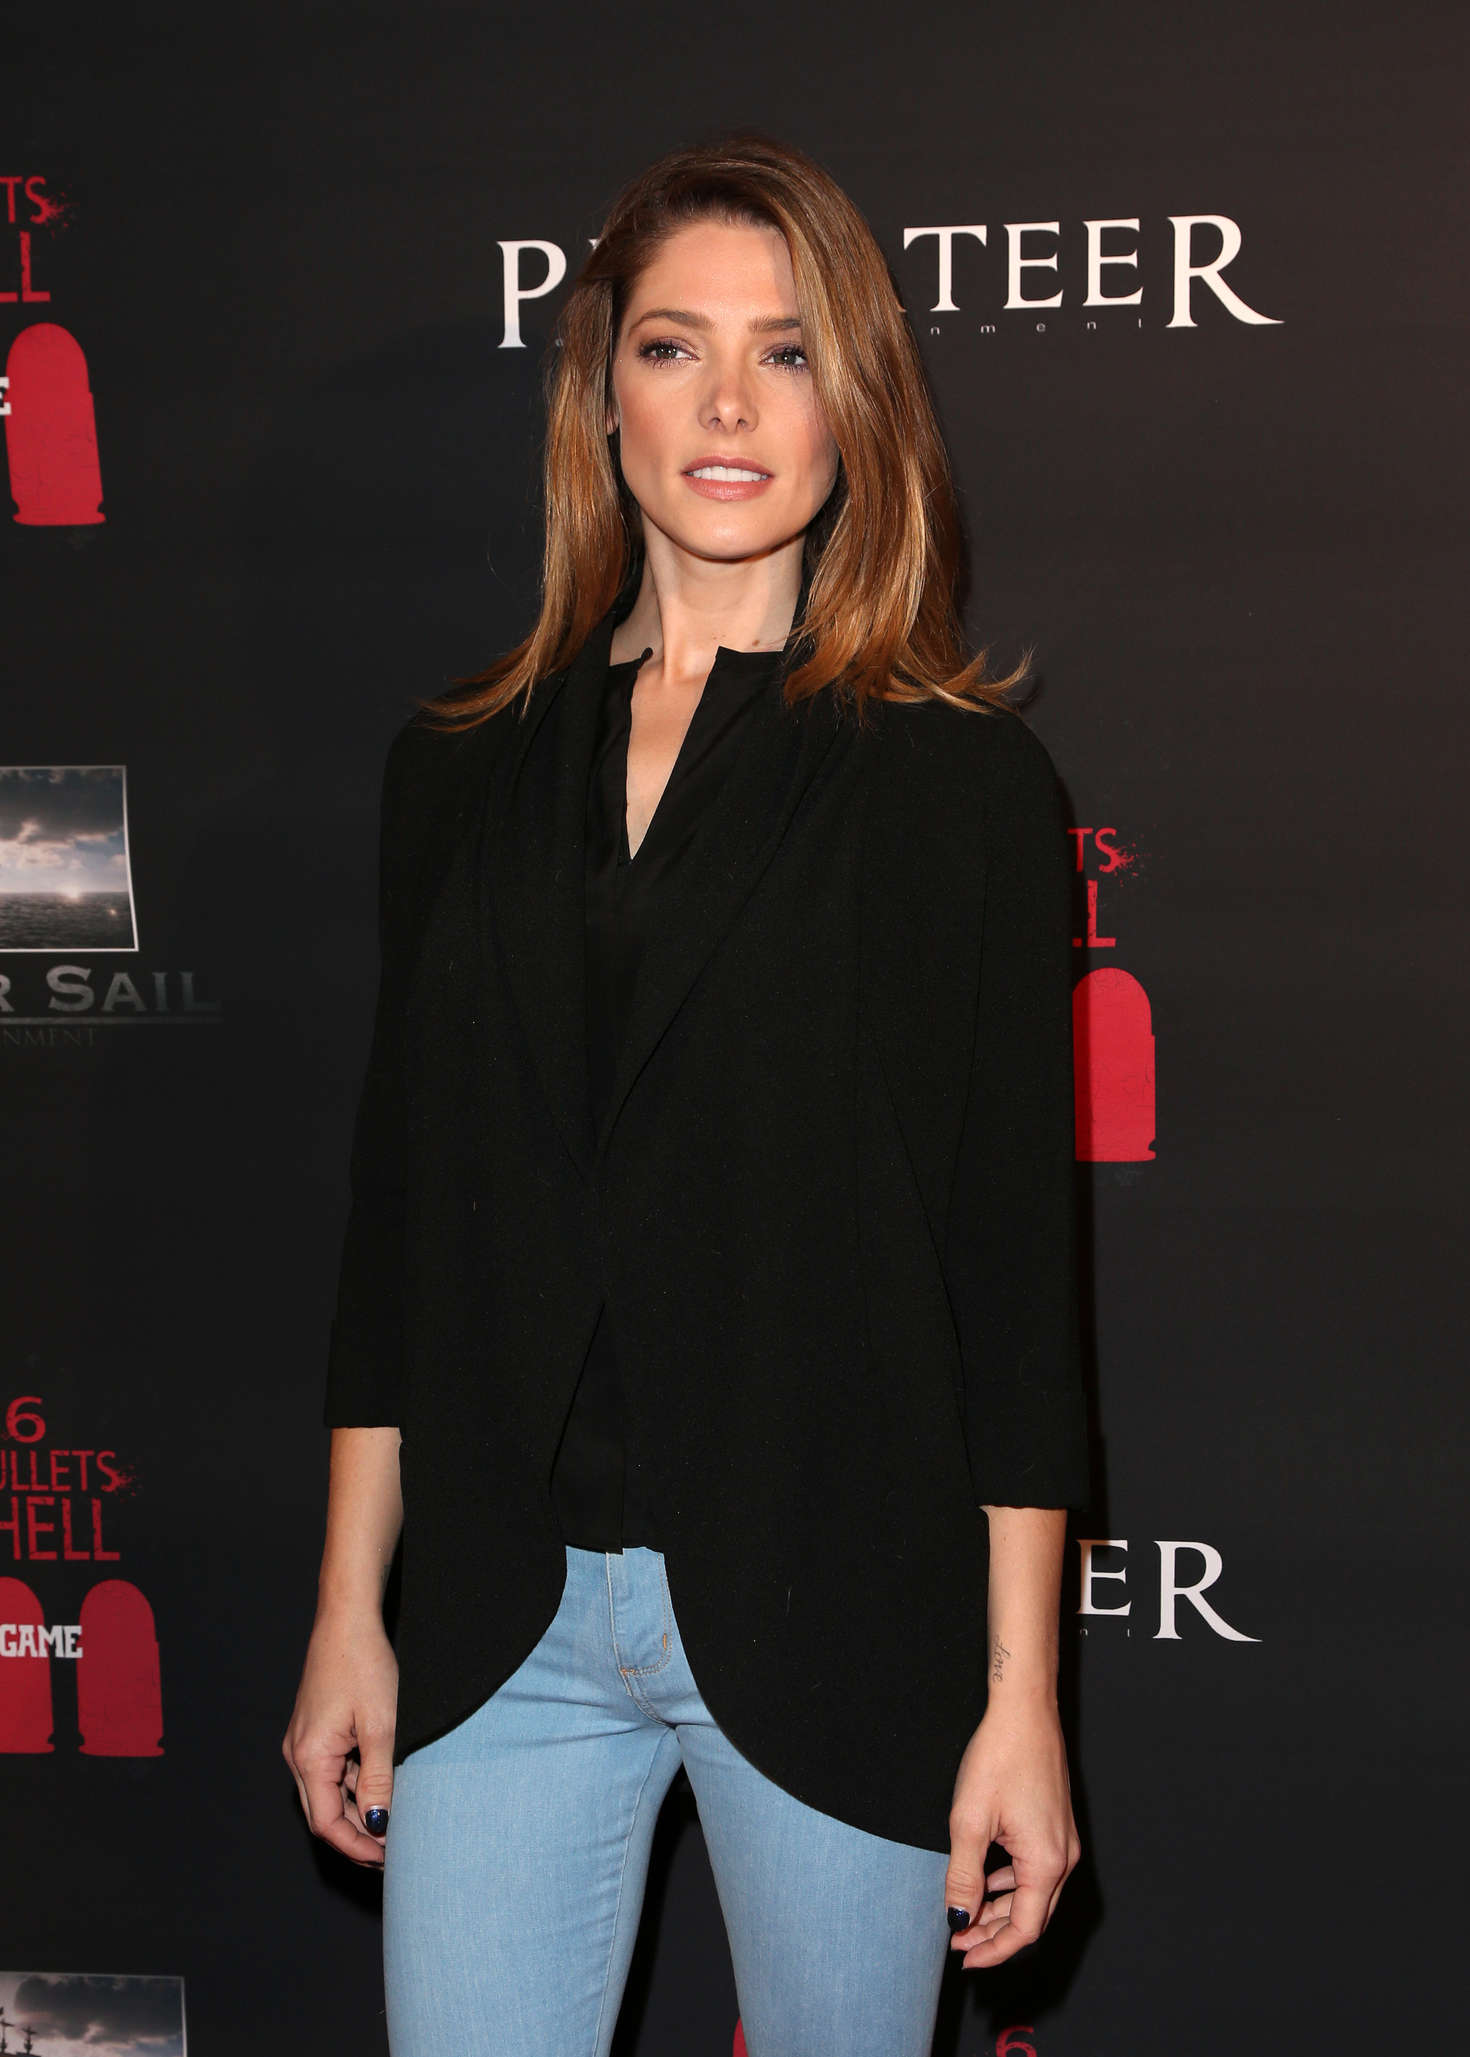 Ashley Greene - '6 Bullets To Hell' Premiere in Los Angeles